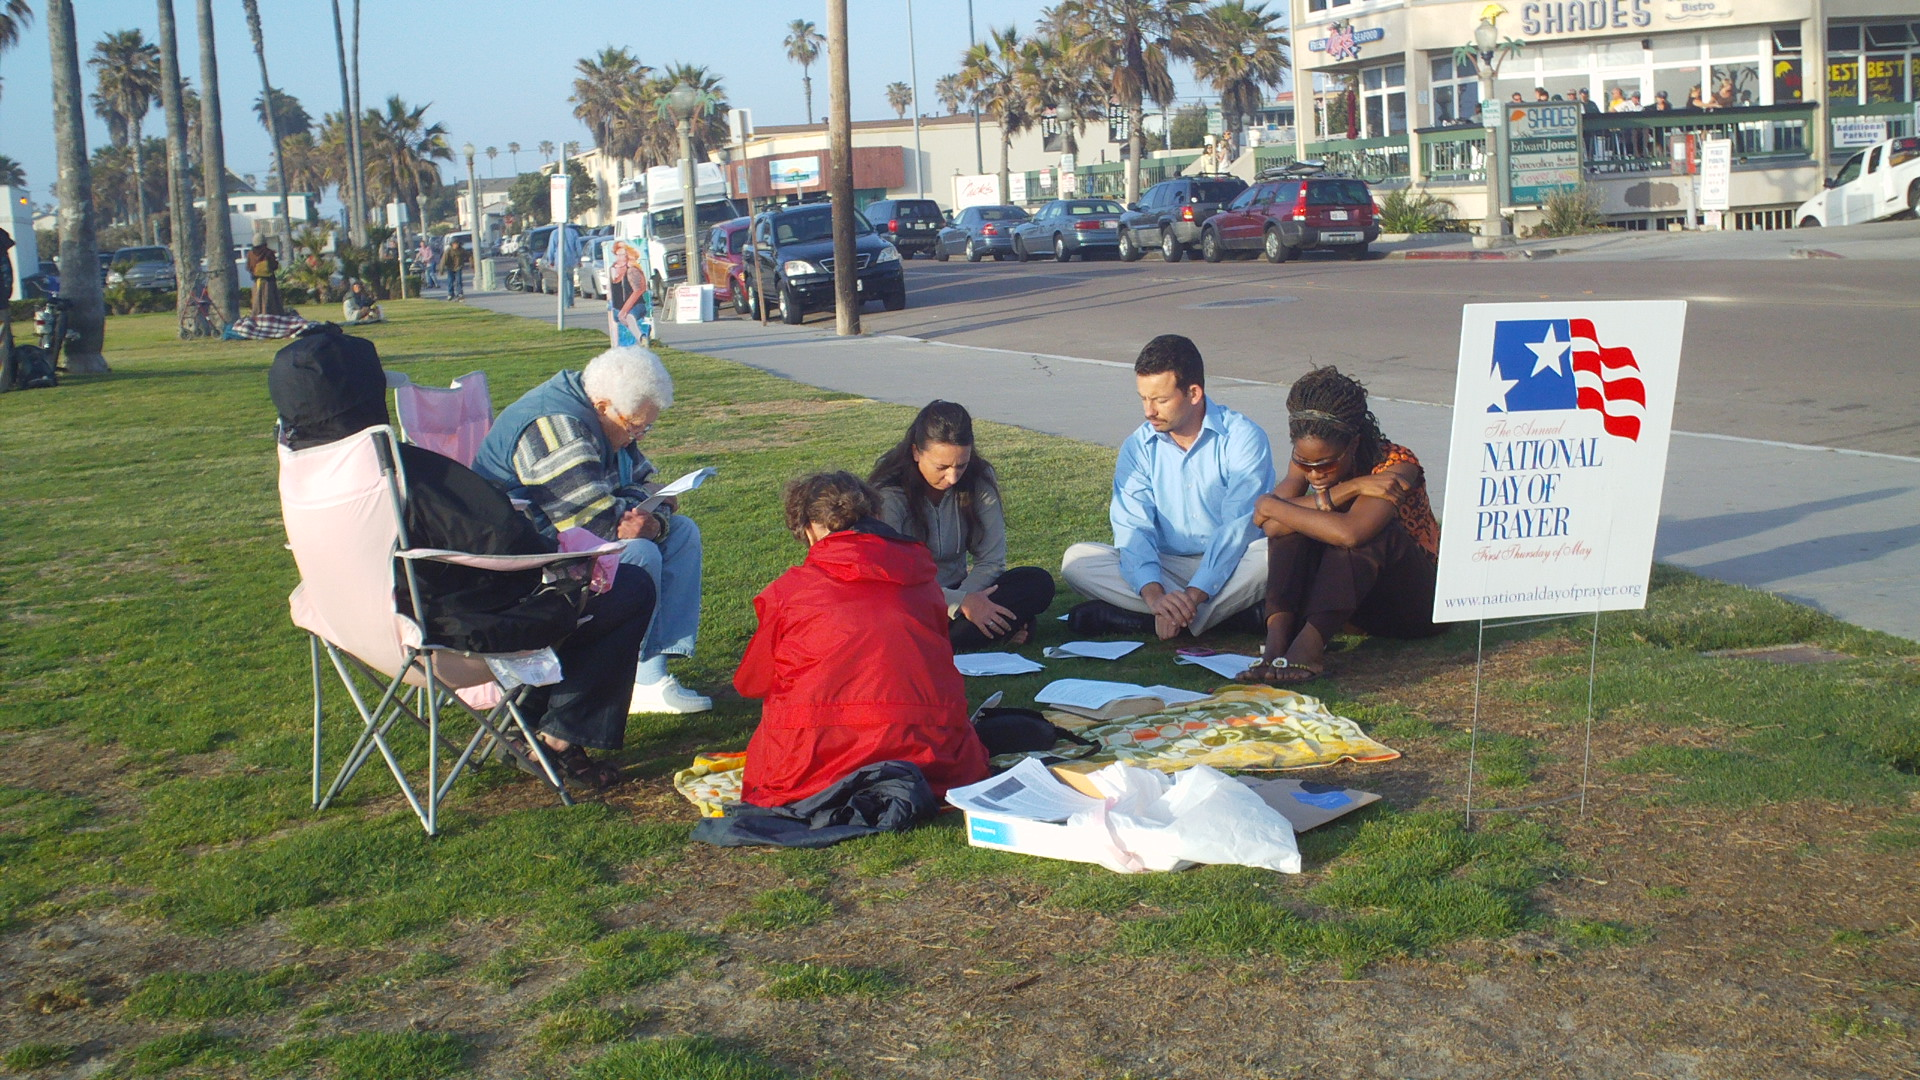 Group of Ocean Beach (California) citizens participating in a National Day of Prayer activity near the Beach coordinated through the local church partners.